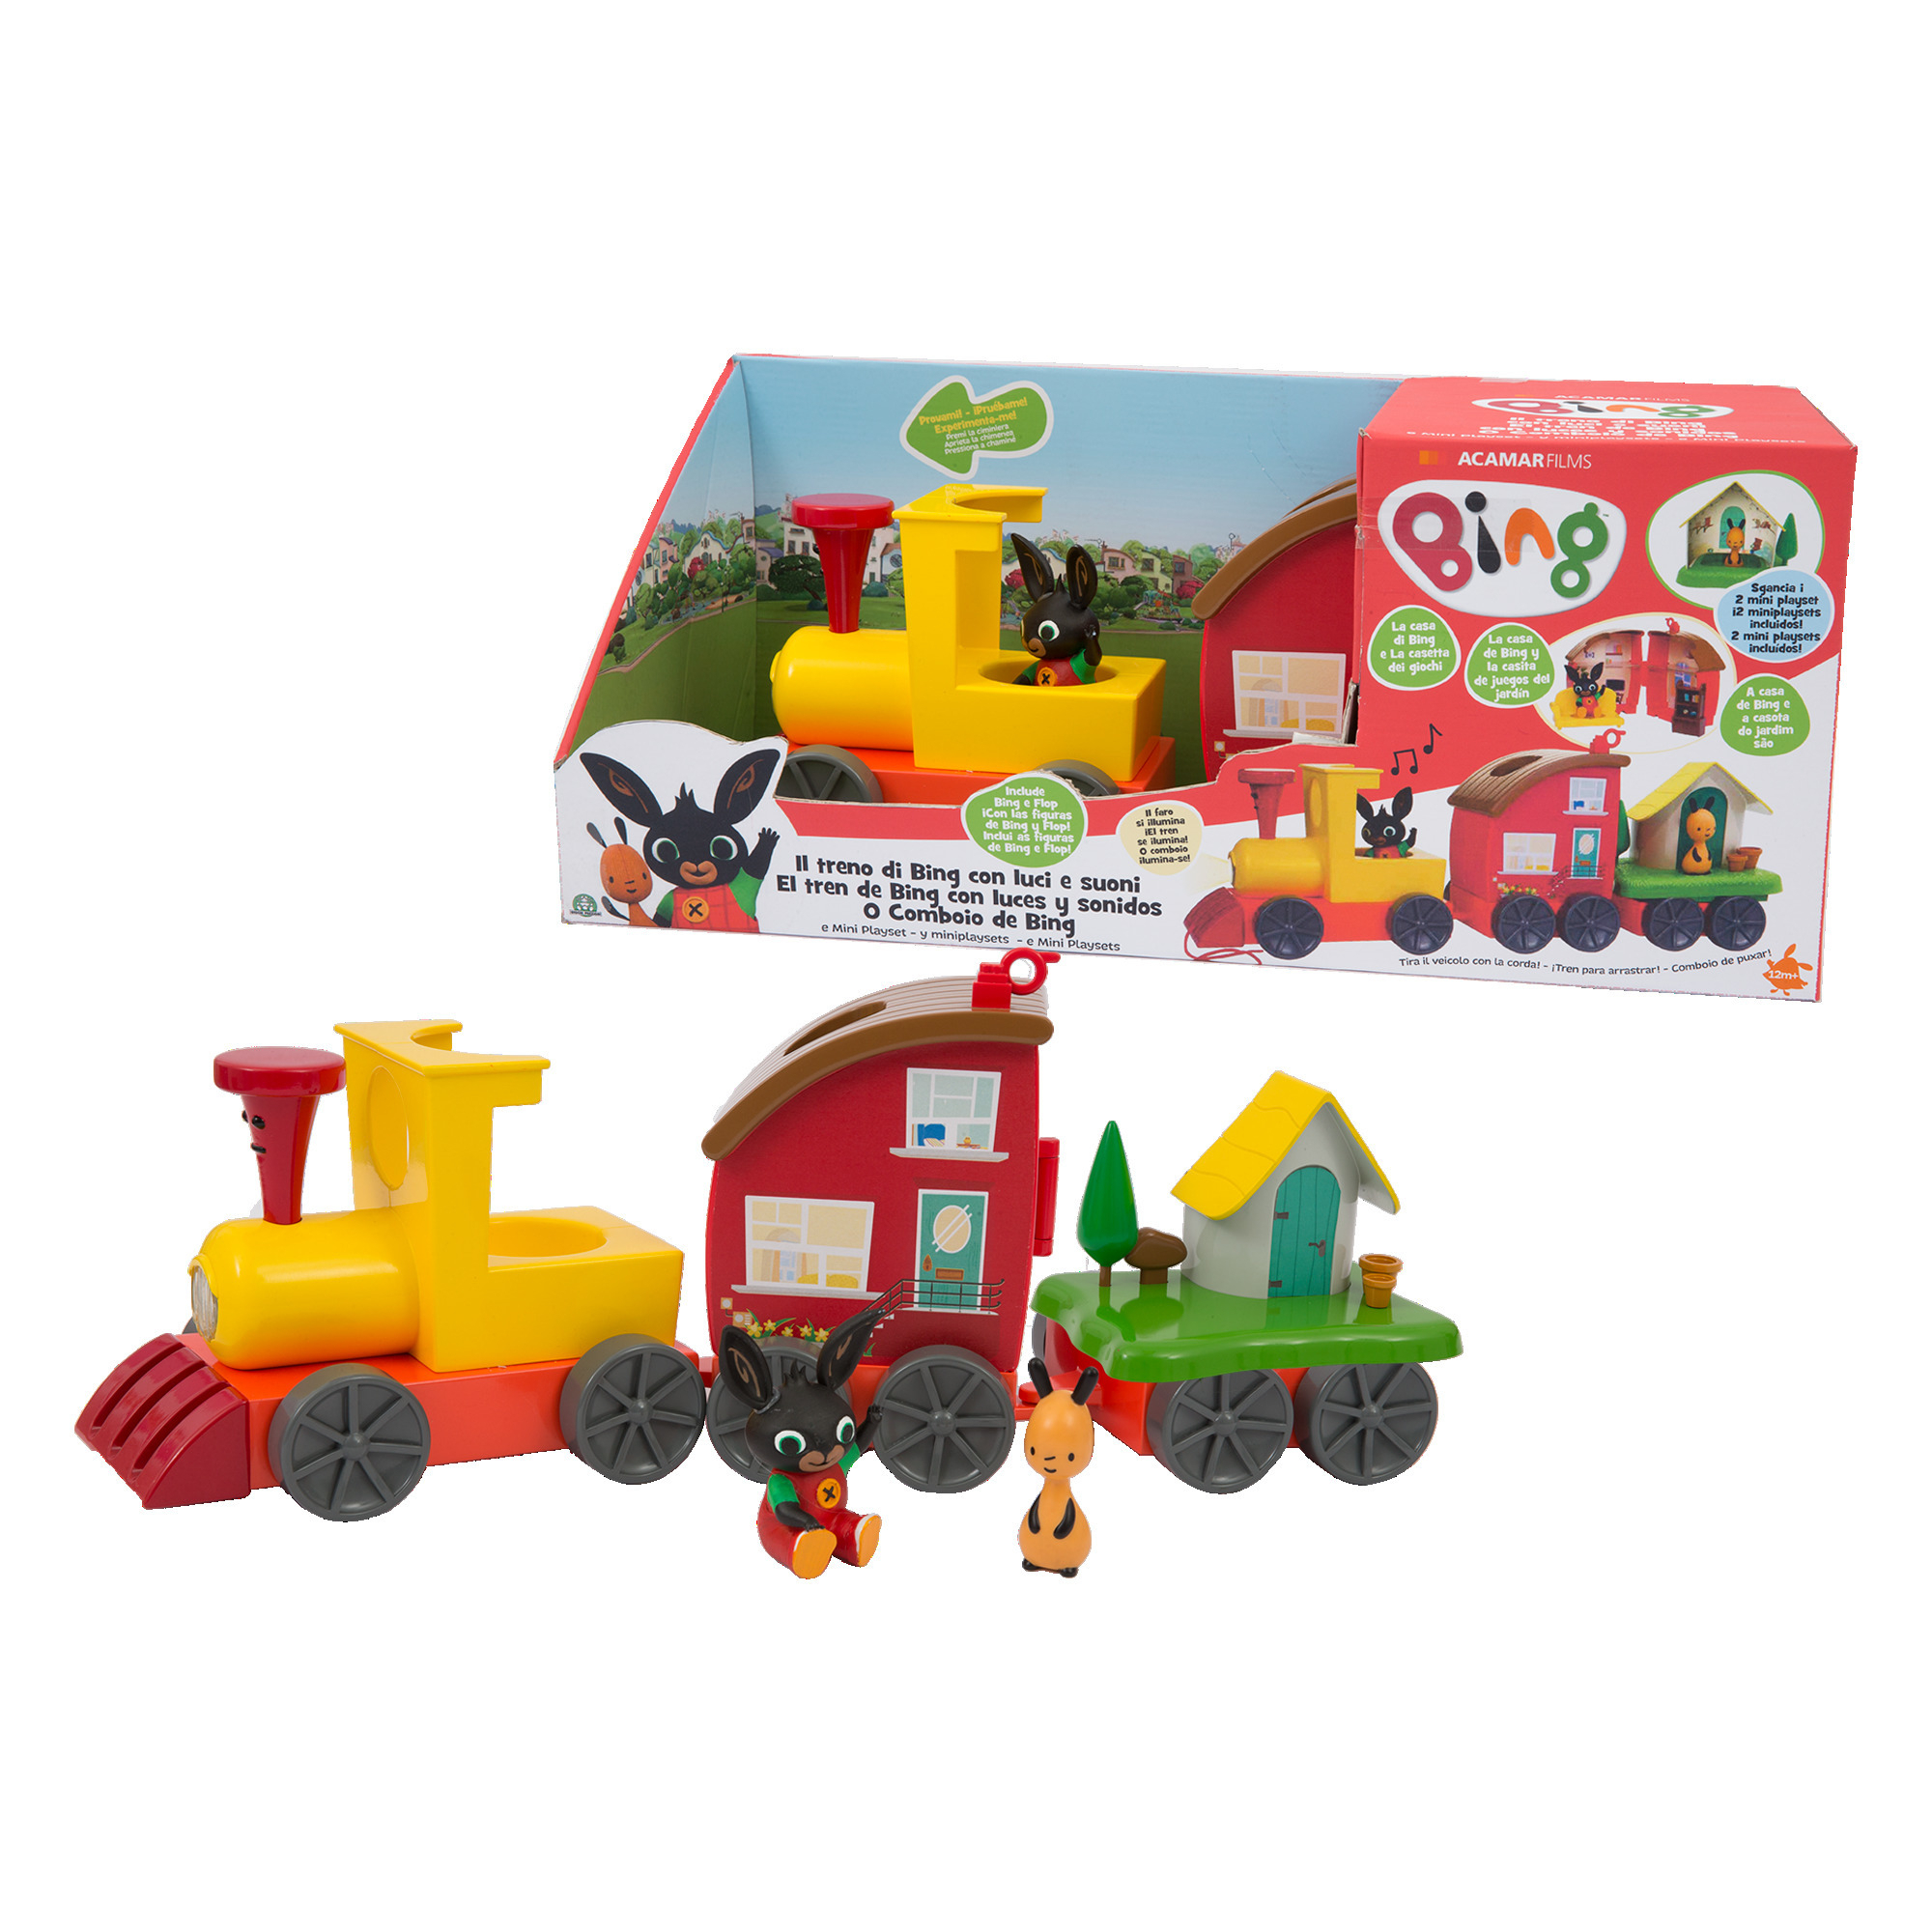 BING TRENO PLAYSET MUSIC